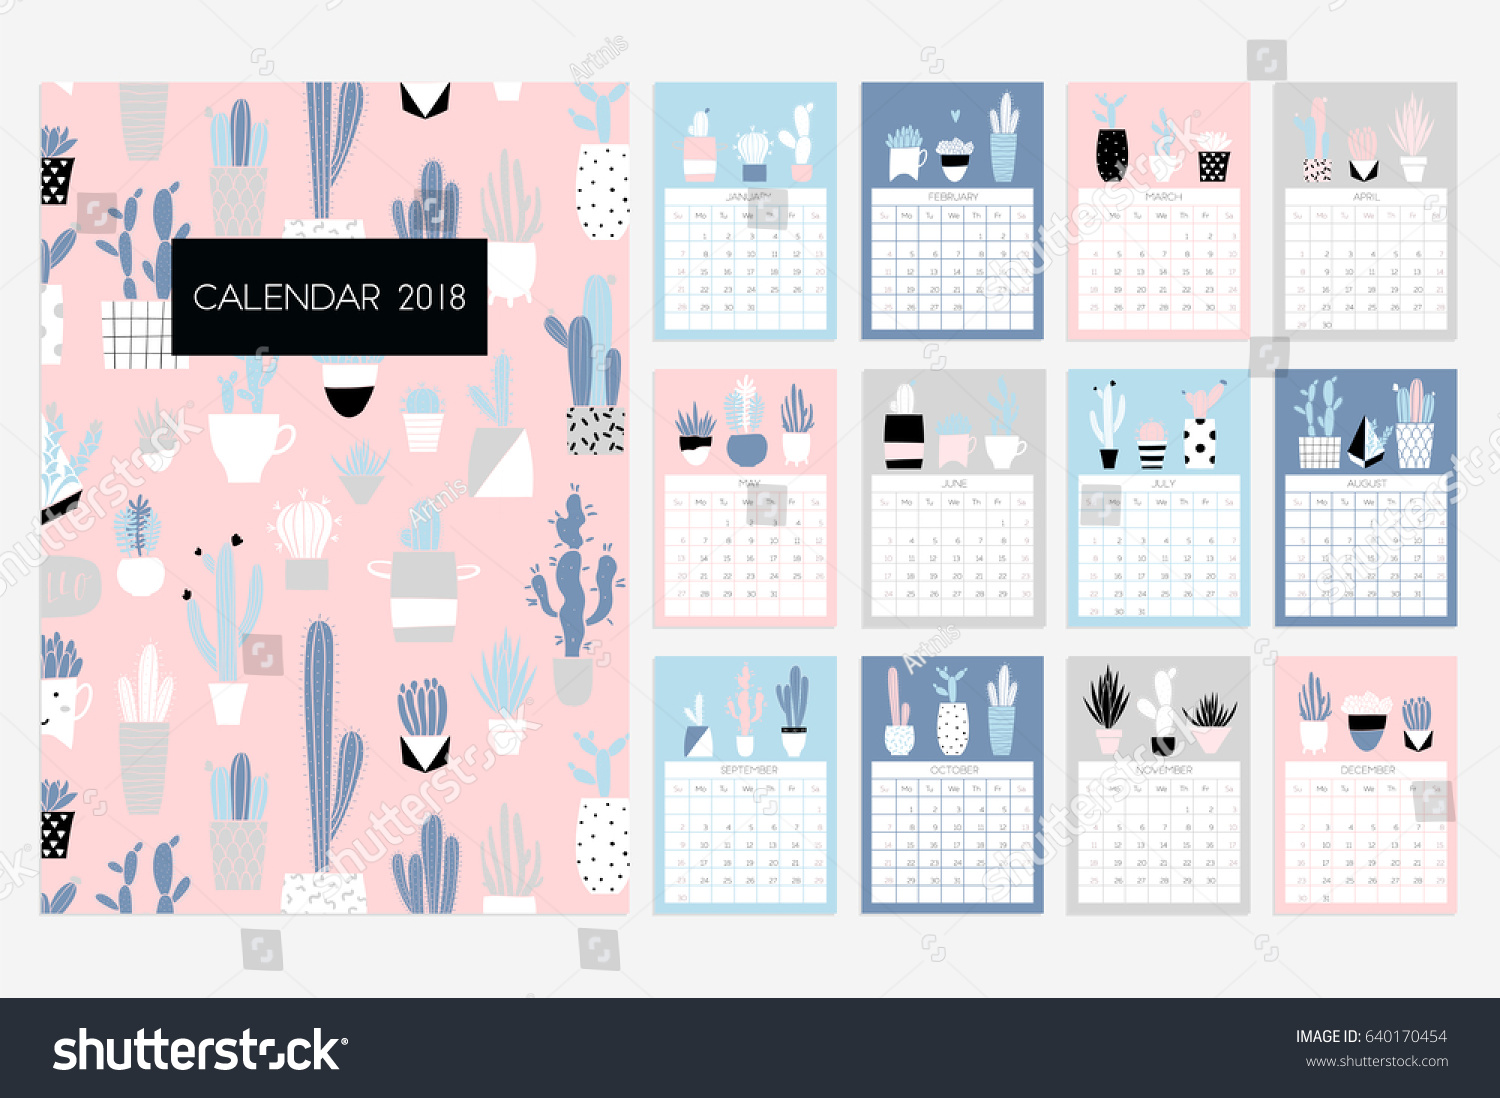 calendar 2018 stock vector fun and cute calendar with hand drawn succulents and cactus